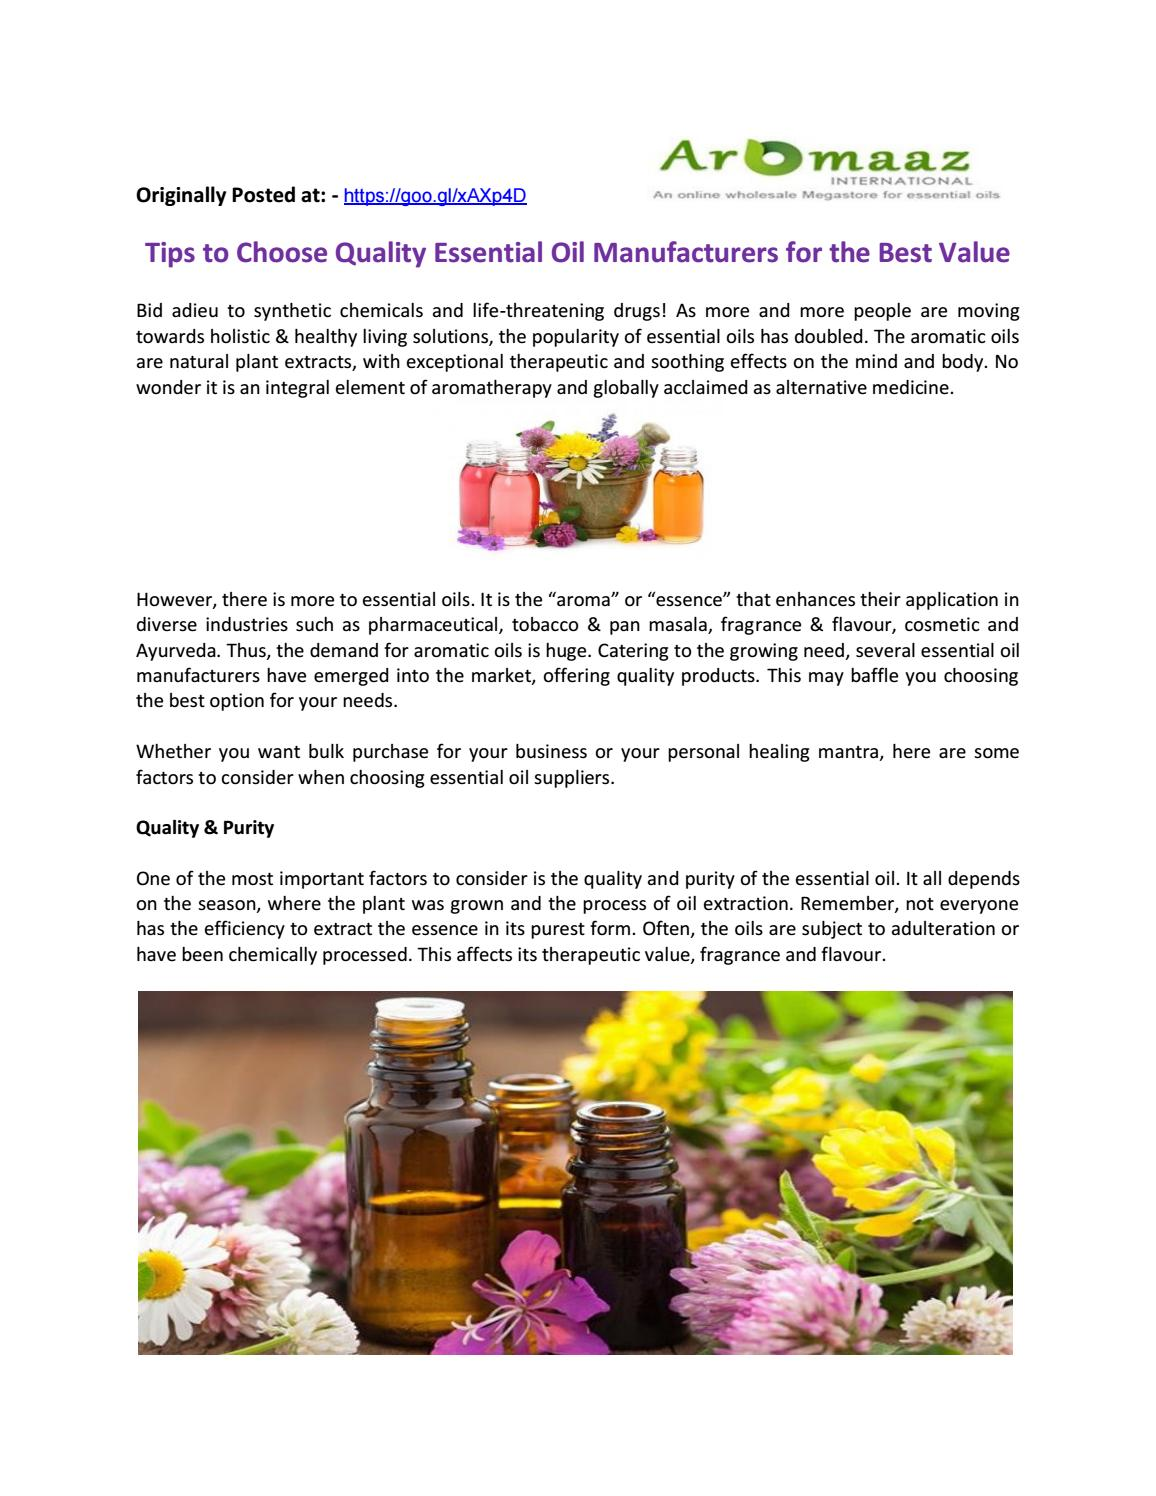 Tips to Choose Quality Essential Oil Manufacturers for the Best